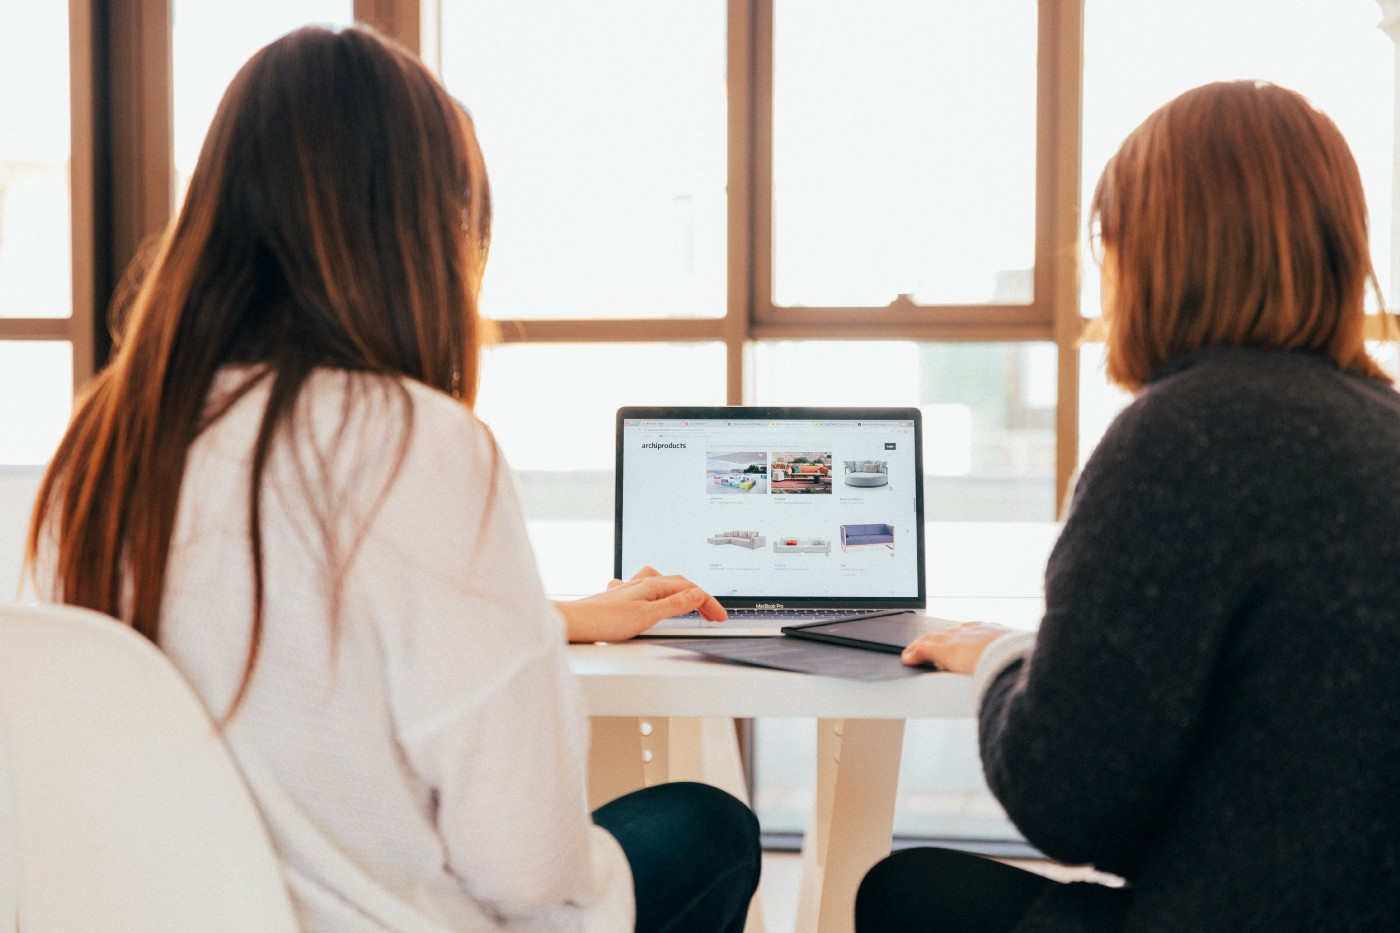 Two girls sitting at a table looking at a laptop